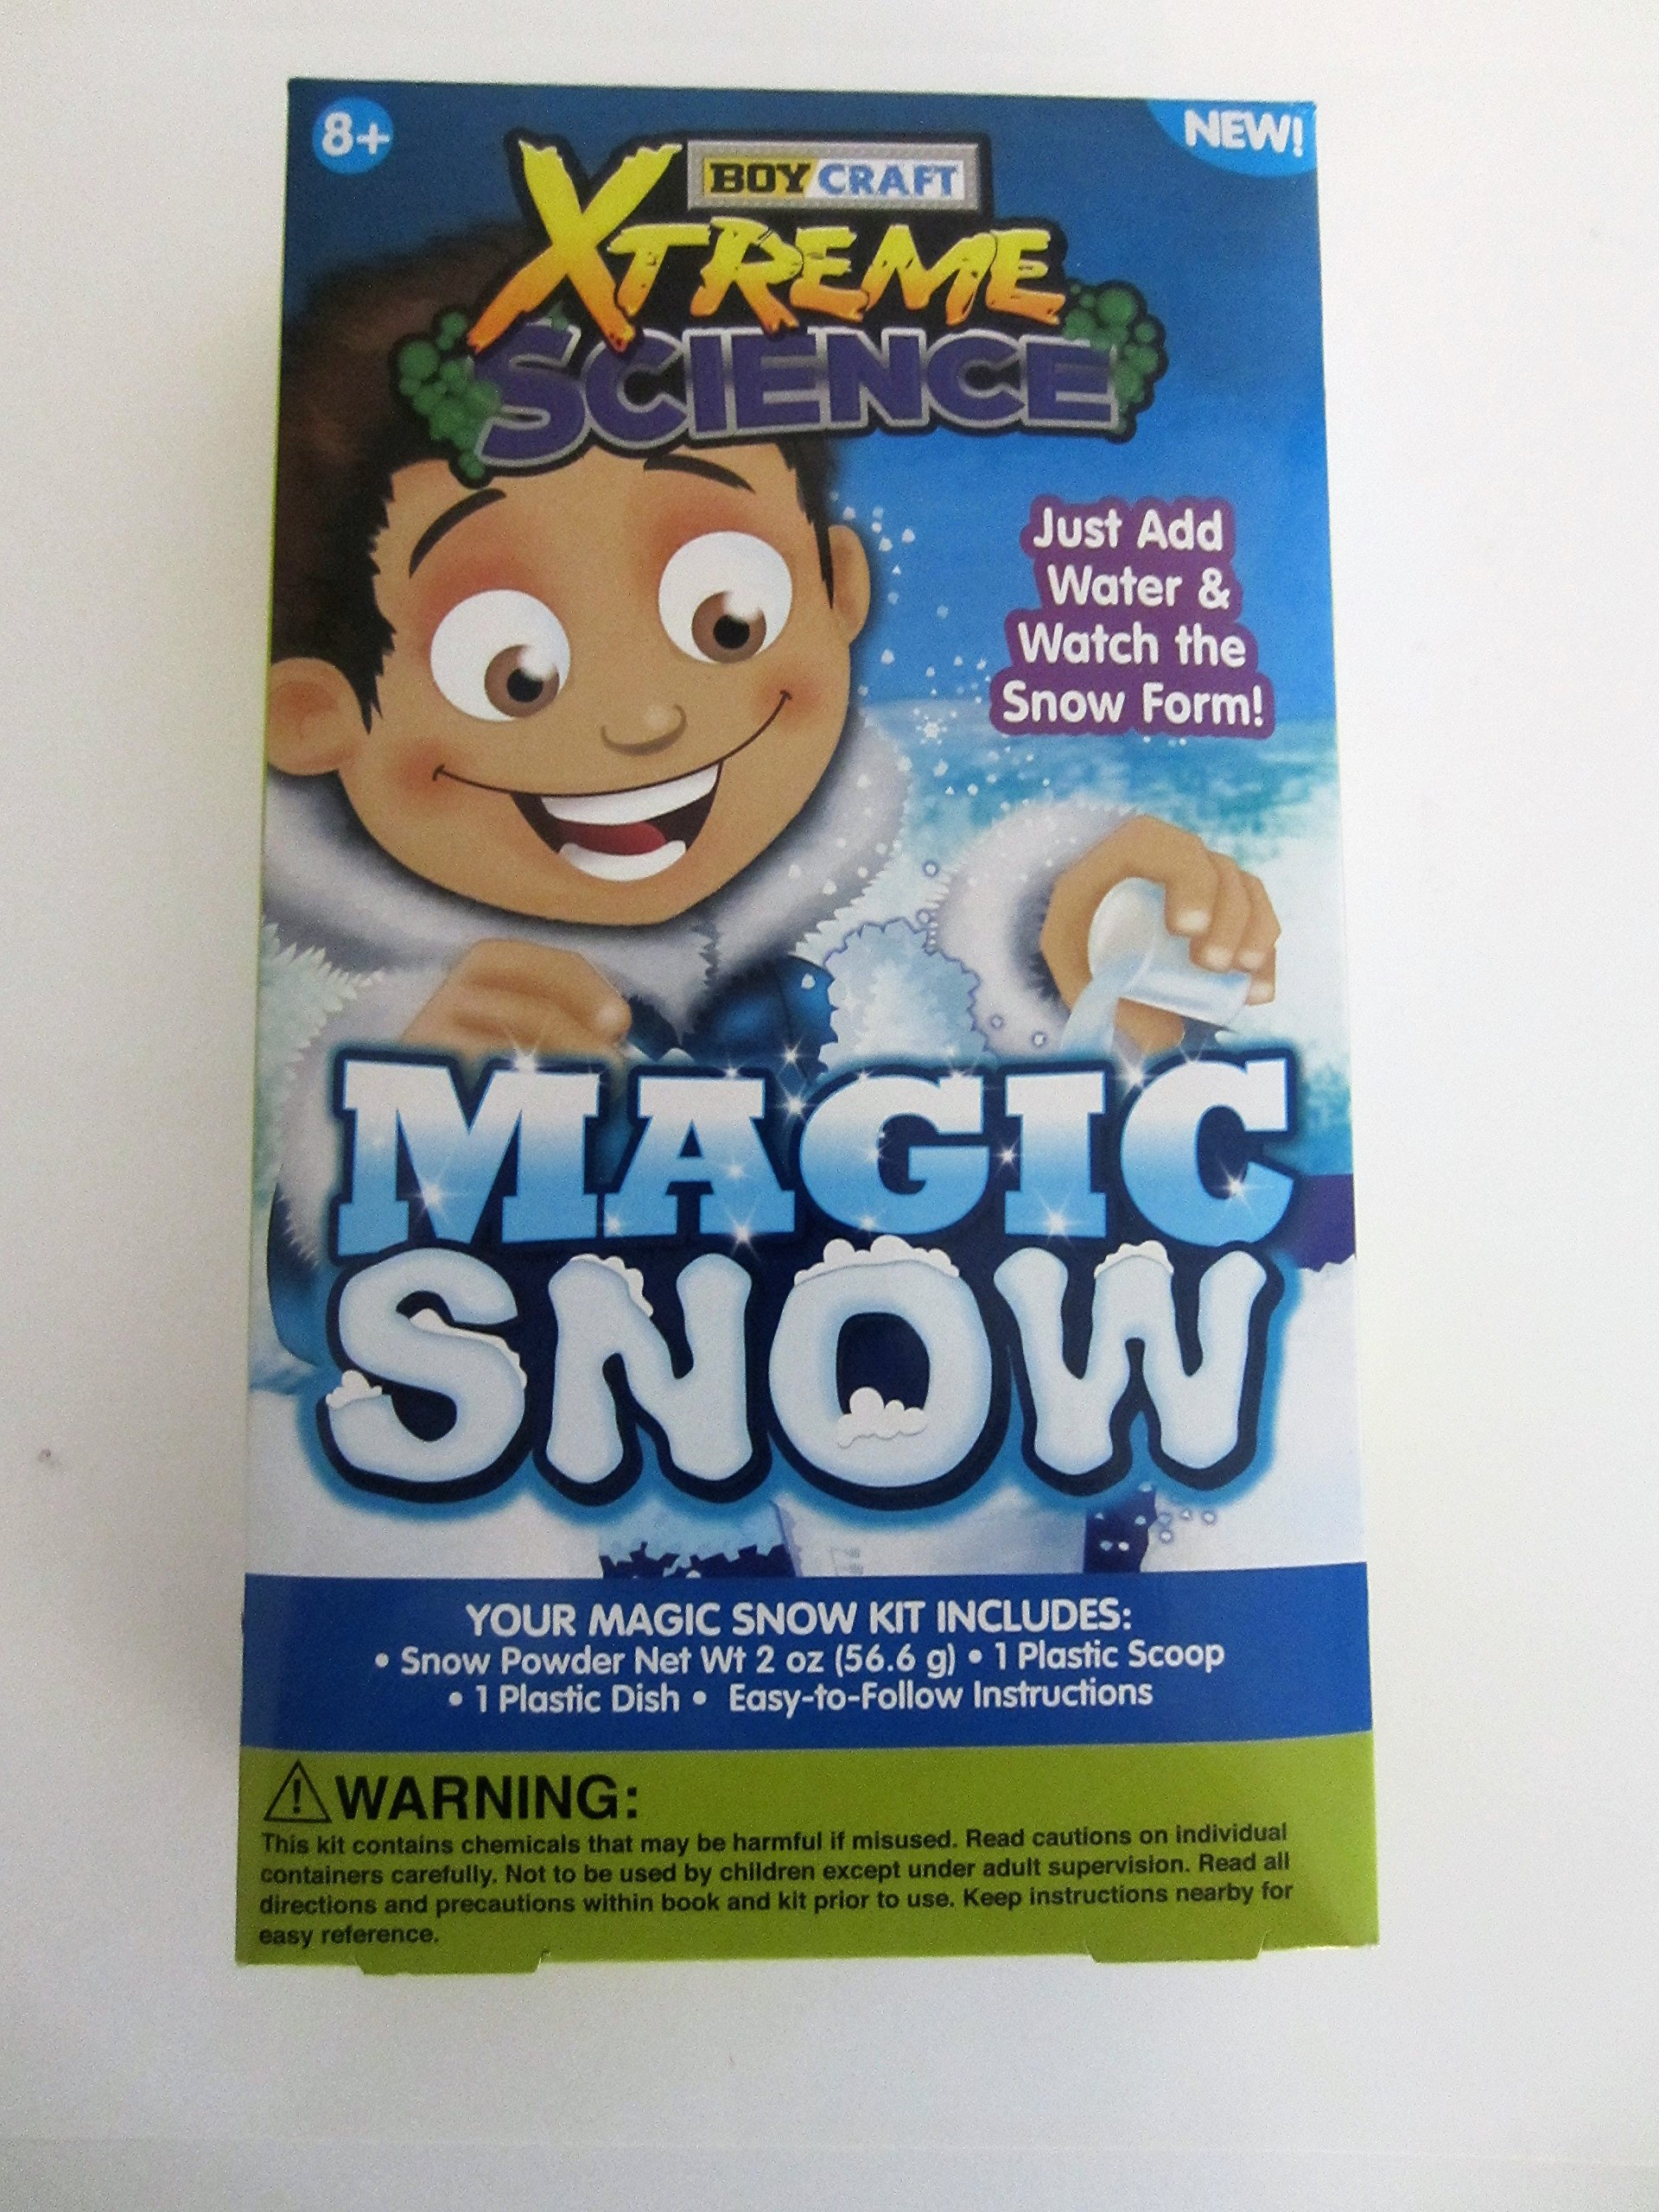 Boy Craft Xtreme Science Magic Snow